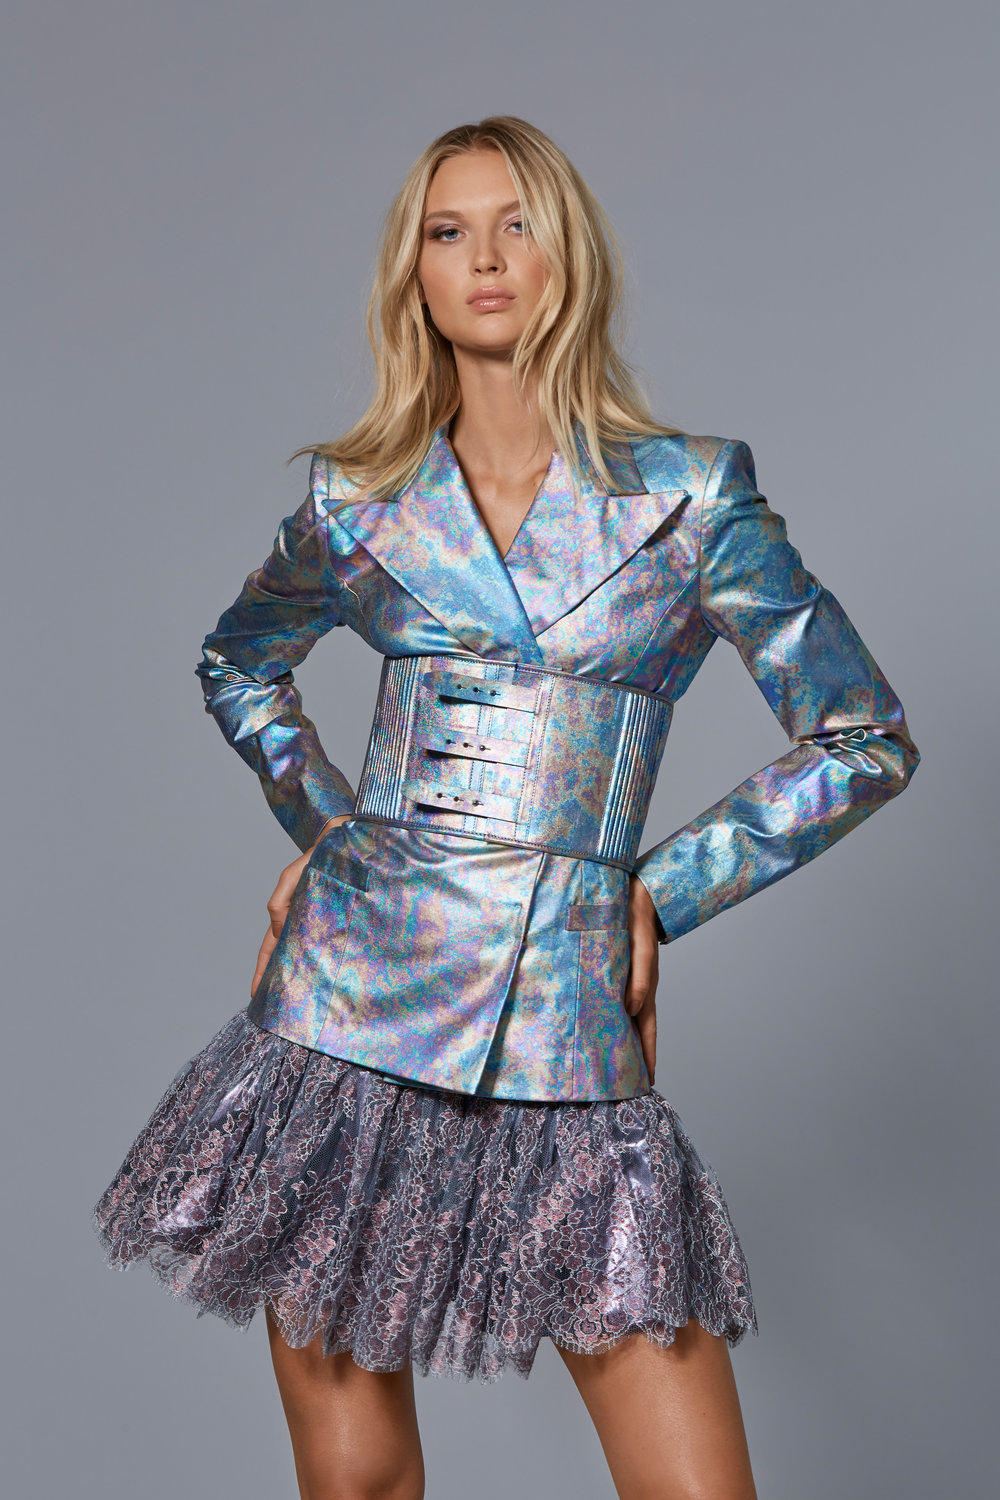 CLAUDIO CINA   LOOK 4:  Metallic Vegan Leather Jacket With Matching Corset Belt  Metallic Lace Mini Skirt